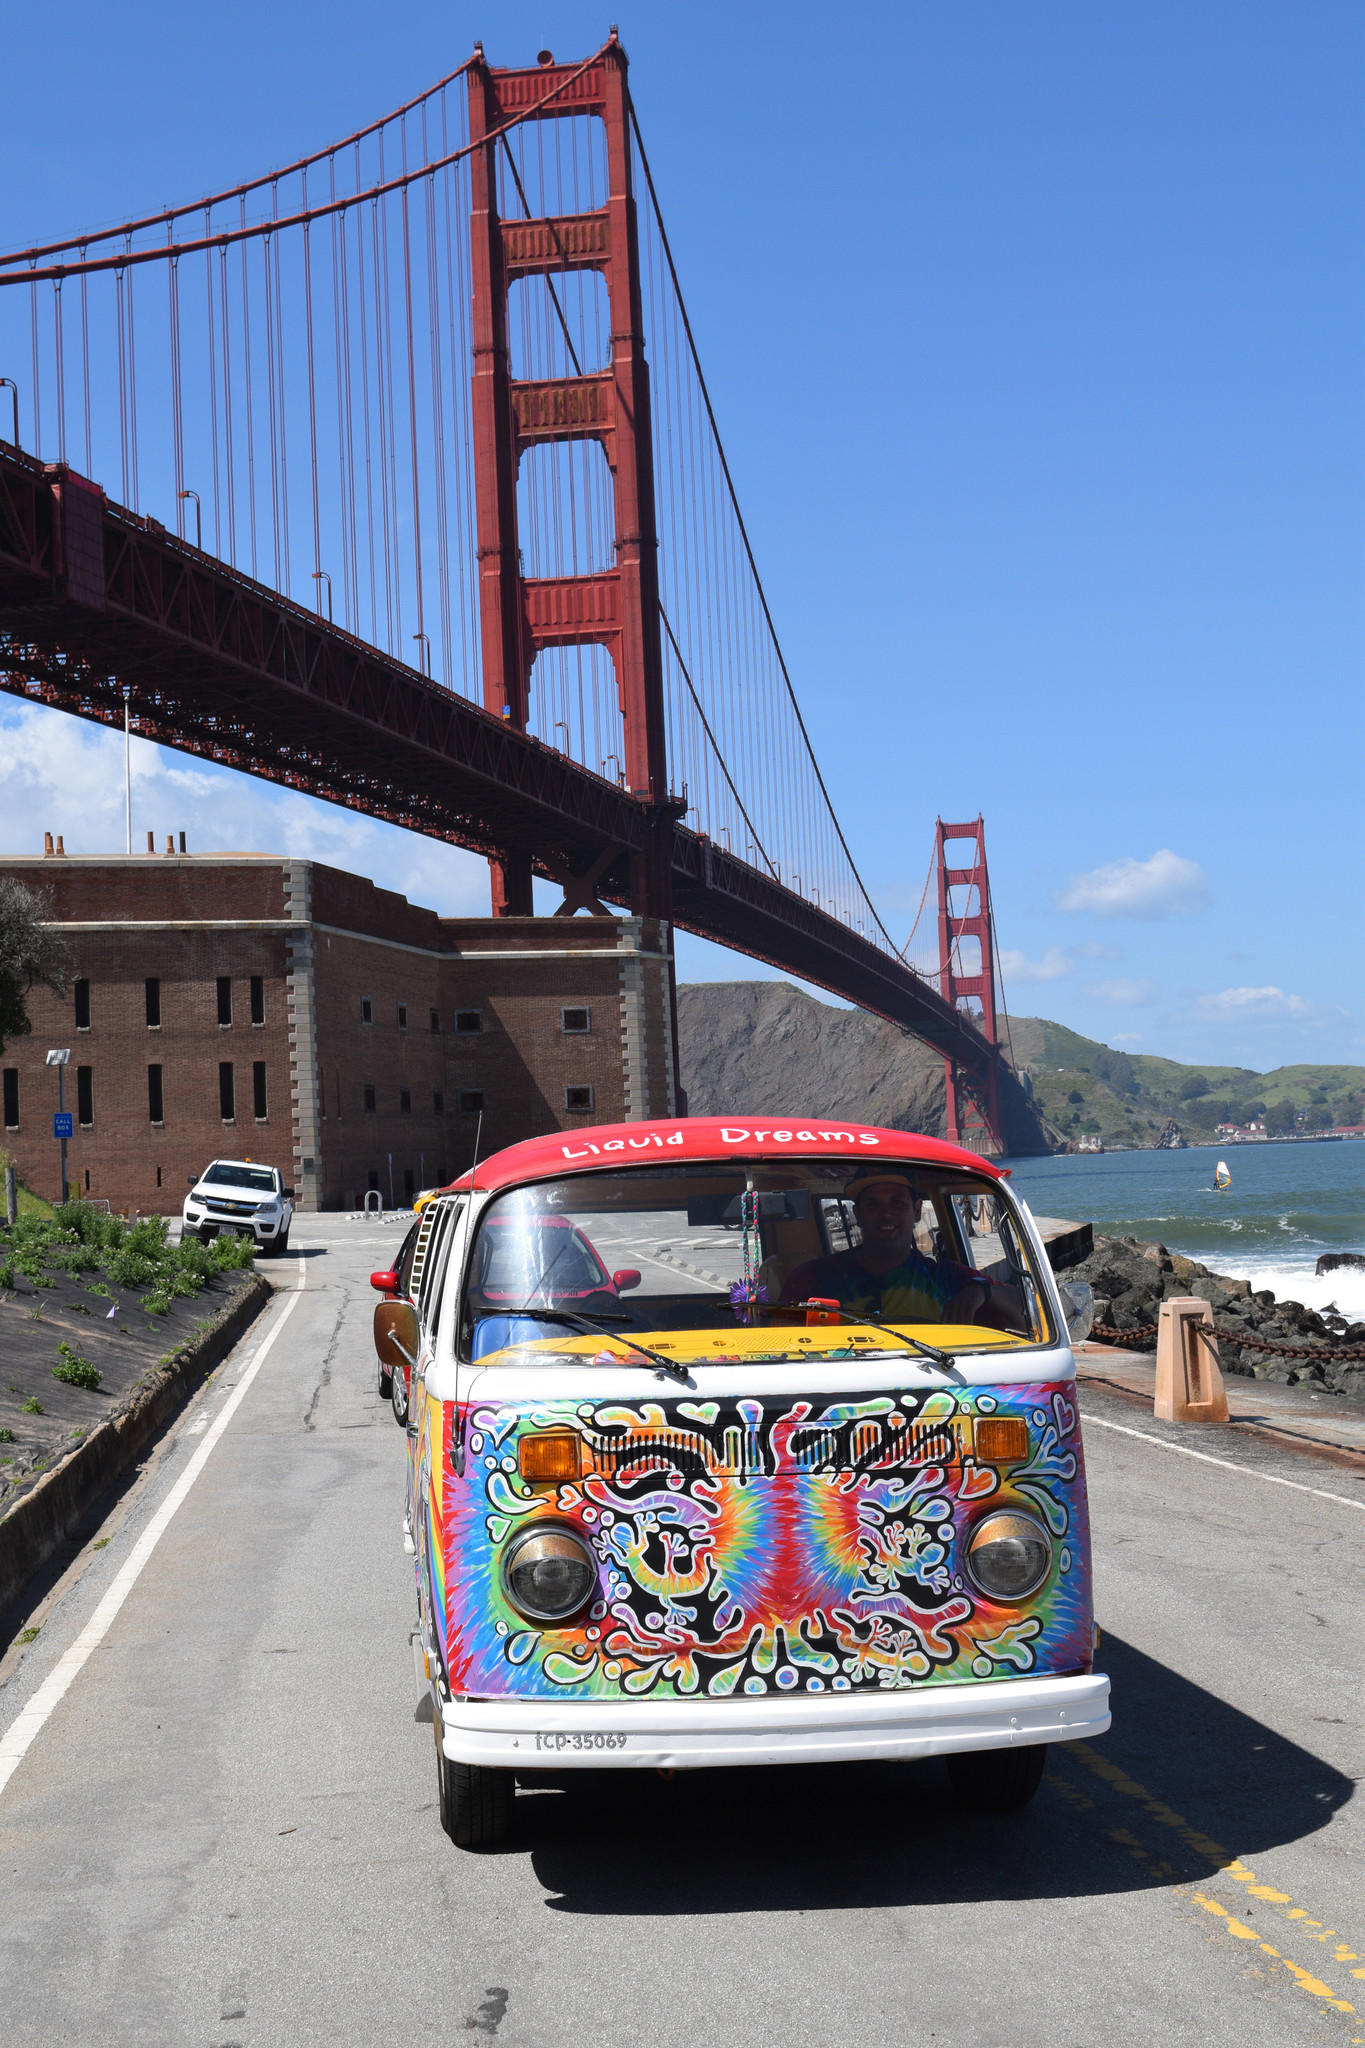 The brilliantly painted VW van of San Francisco Love Tours makes a stop at the Golden Gate Bridge. The tour, run by Allan Graves, covers much of the city in 2 1/2 hours, including the Haight-Ashbury District and other locales important to the Summer of Love.